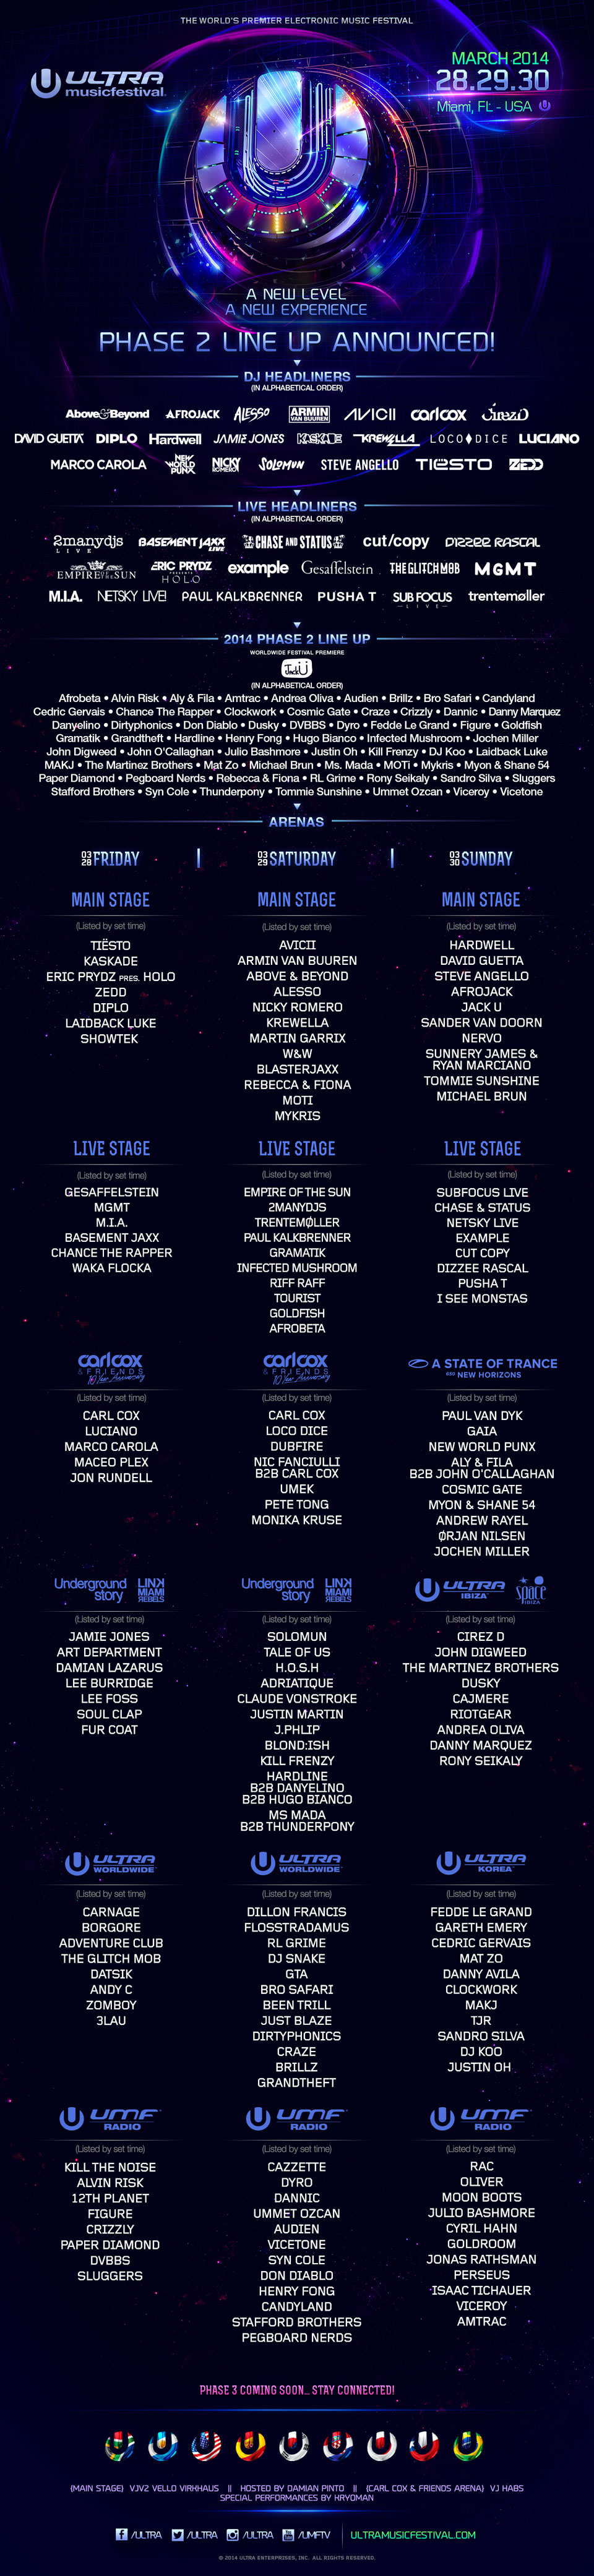 Ultra 2014 Lineup Phase 2